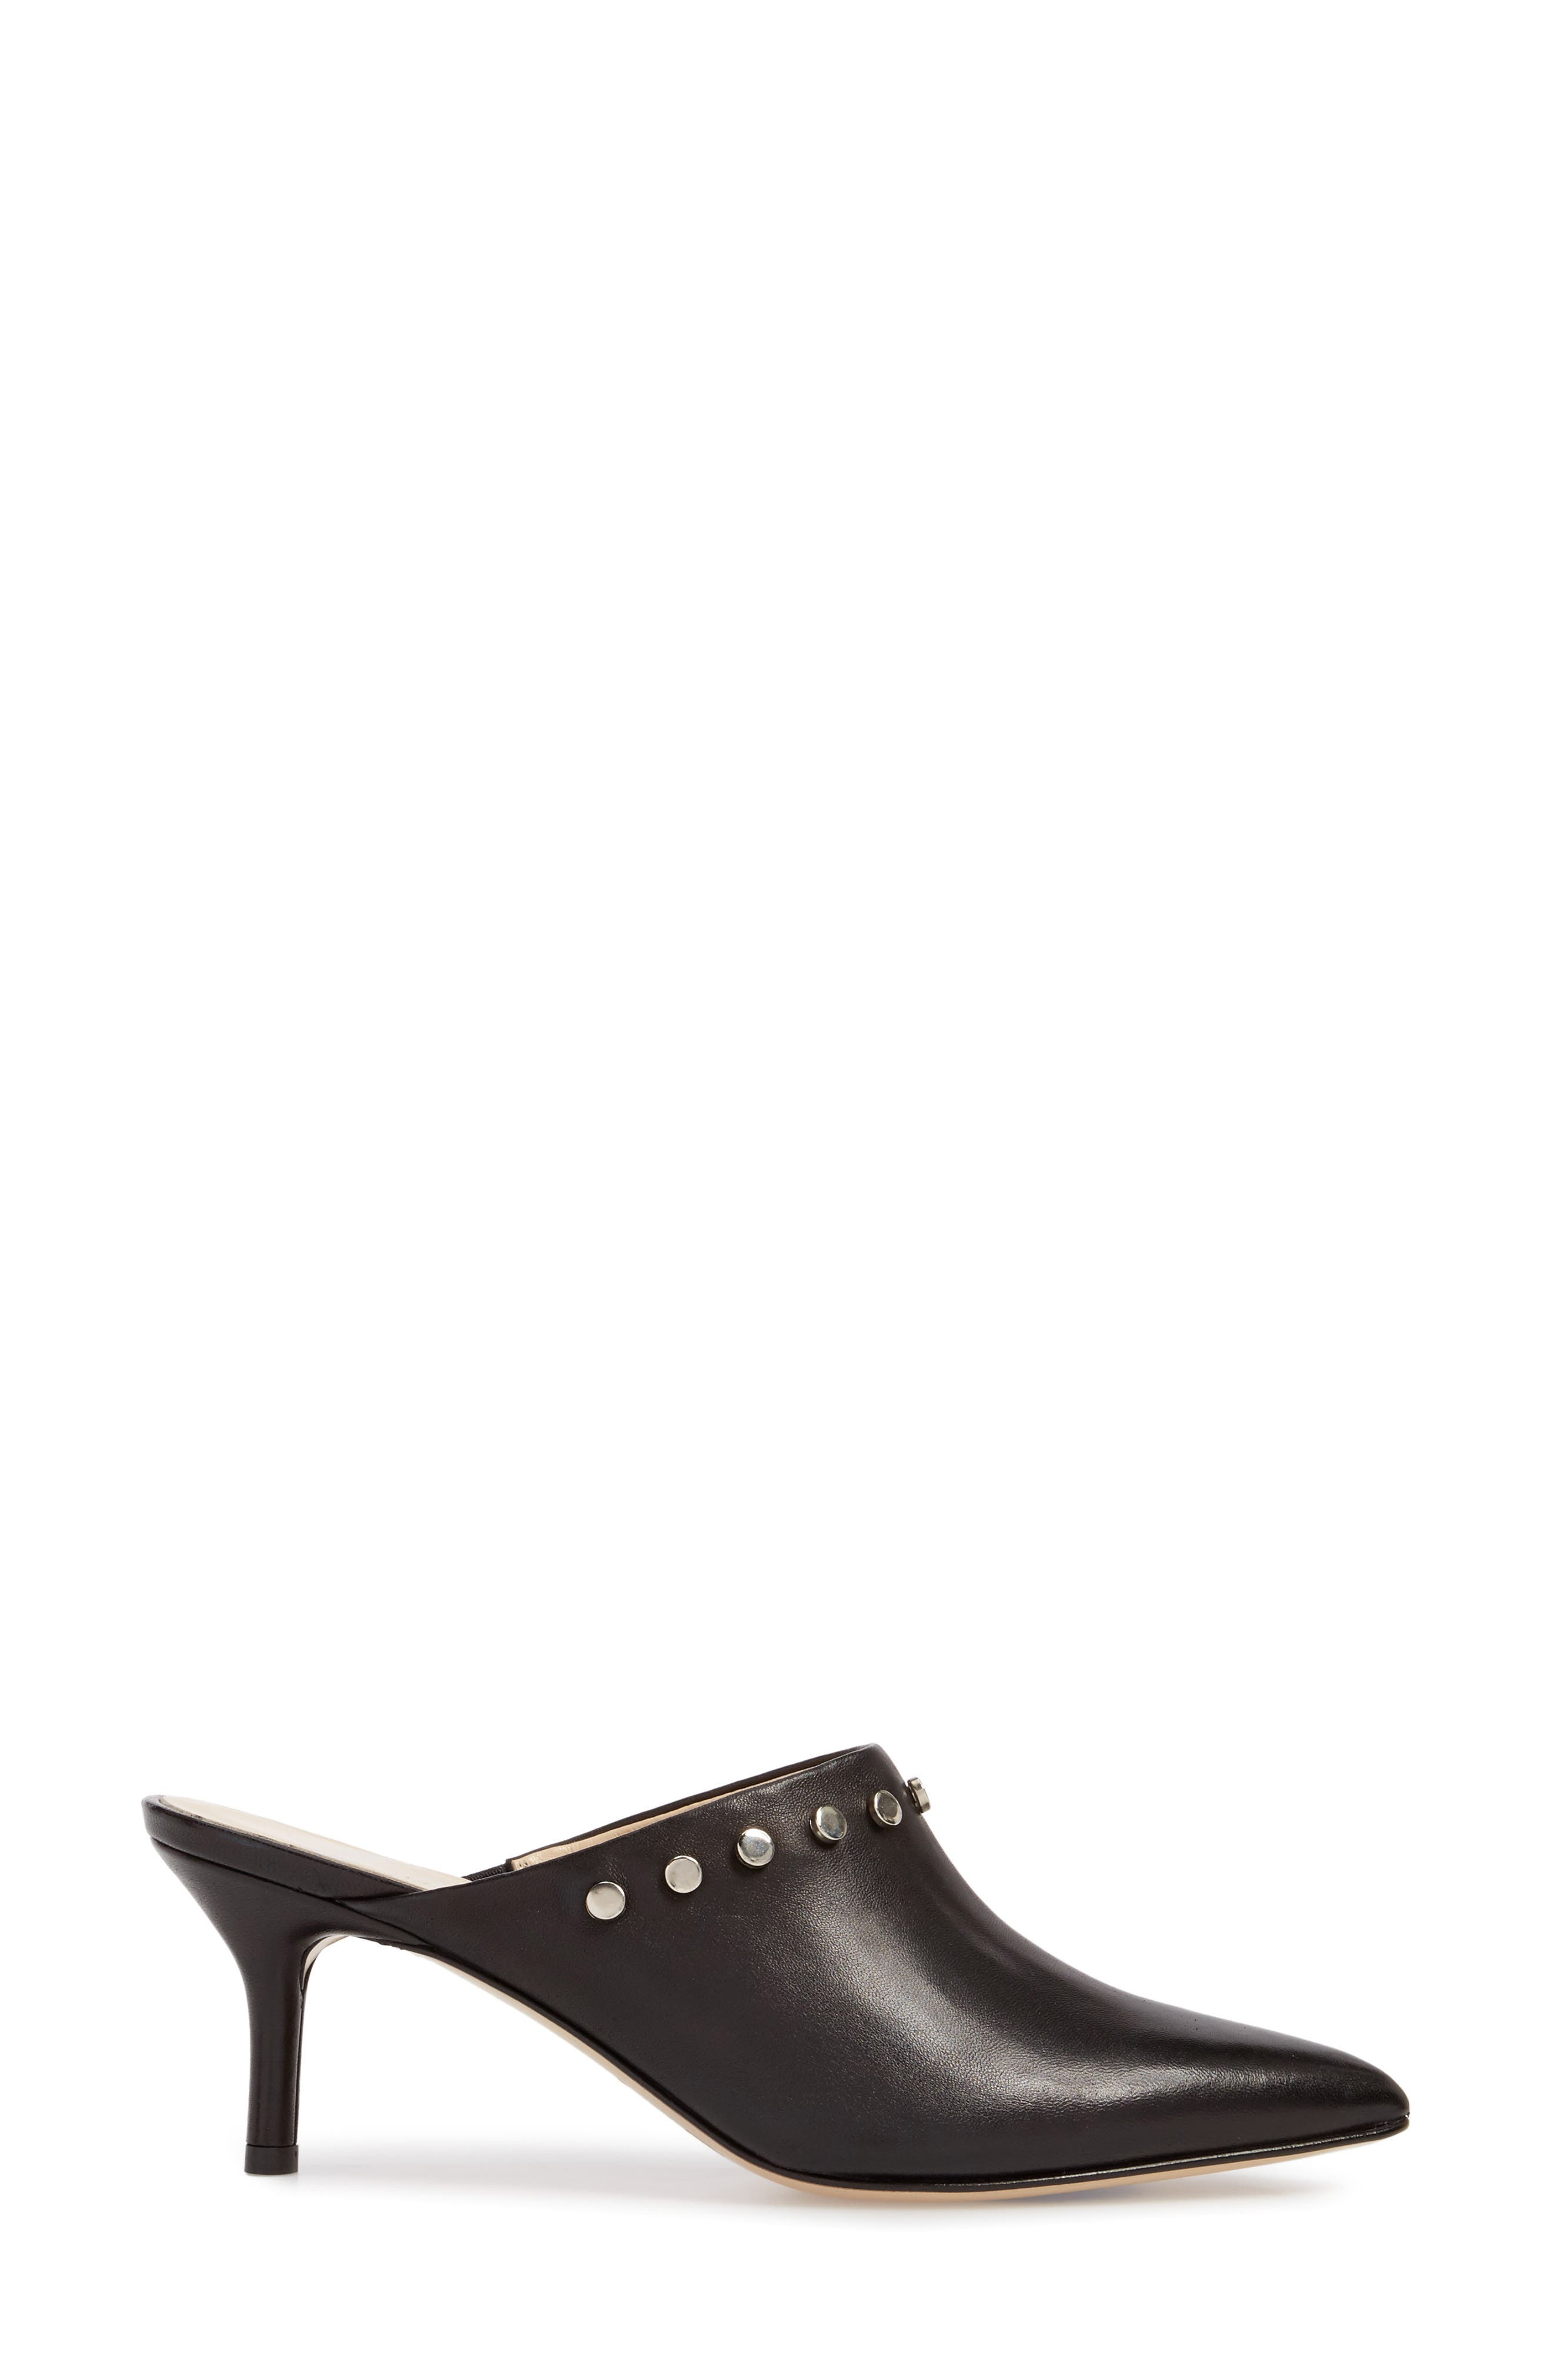 AMALFI BY RANGONI, Priamo Mule, Alternate thumbnail 3, color, BLACK LEATHER